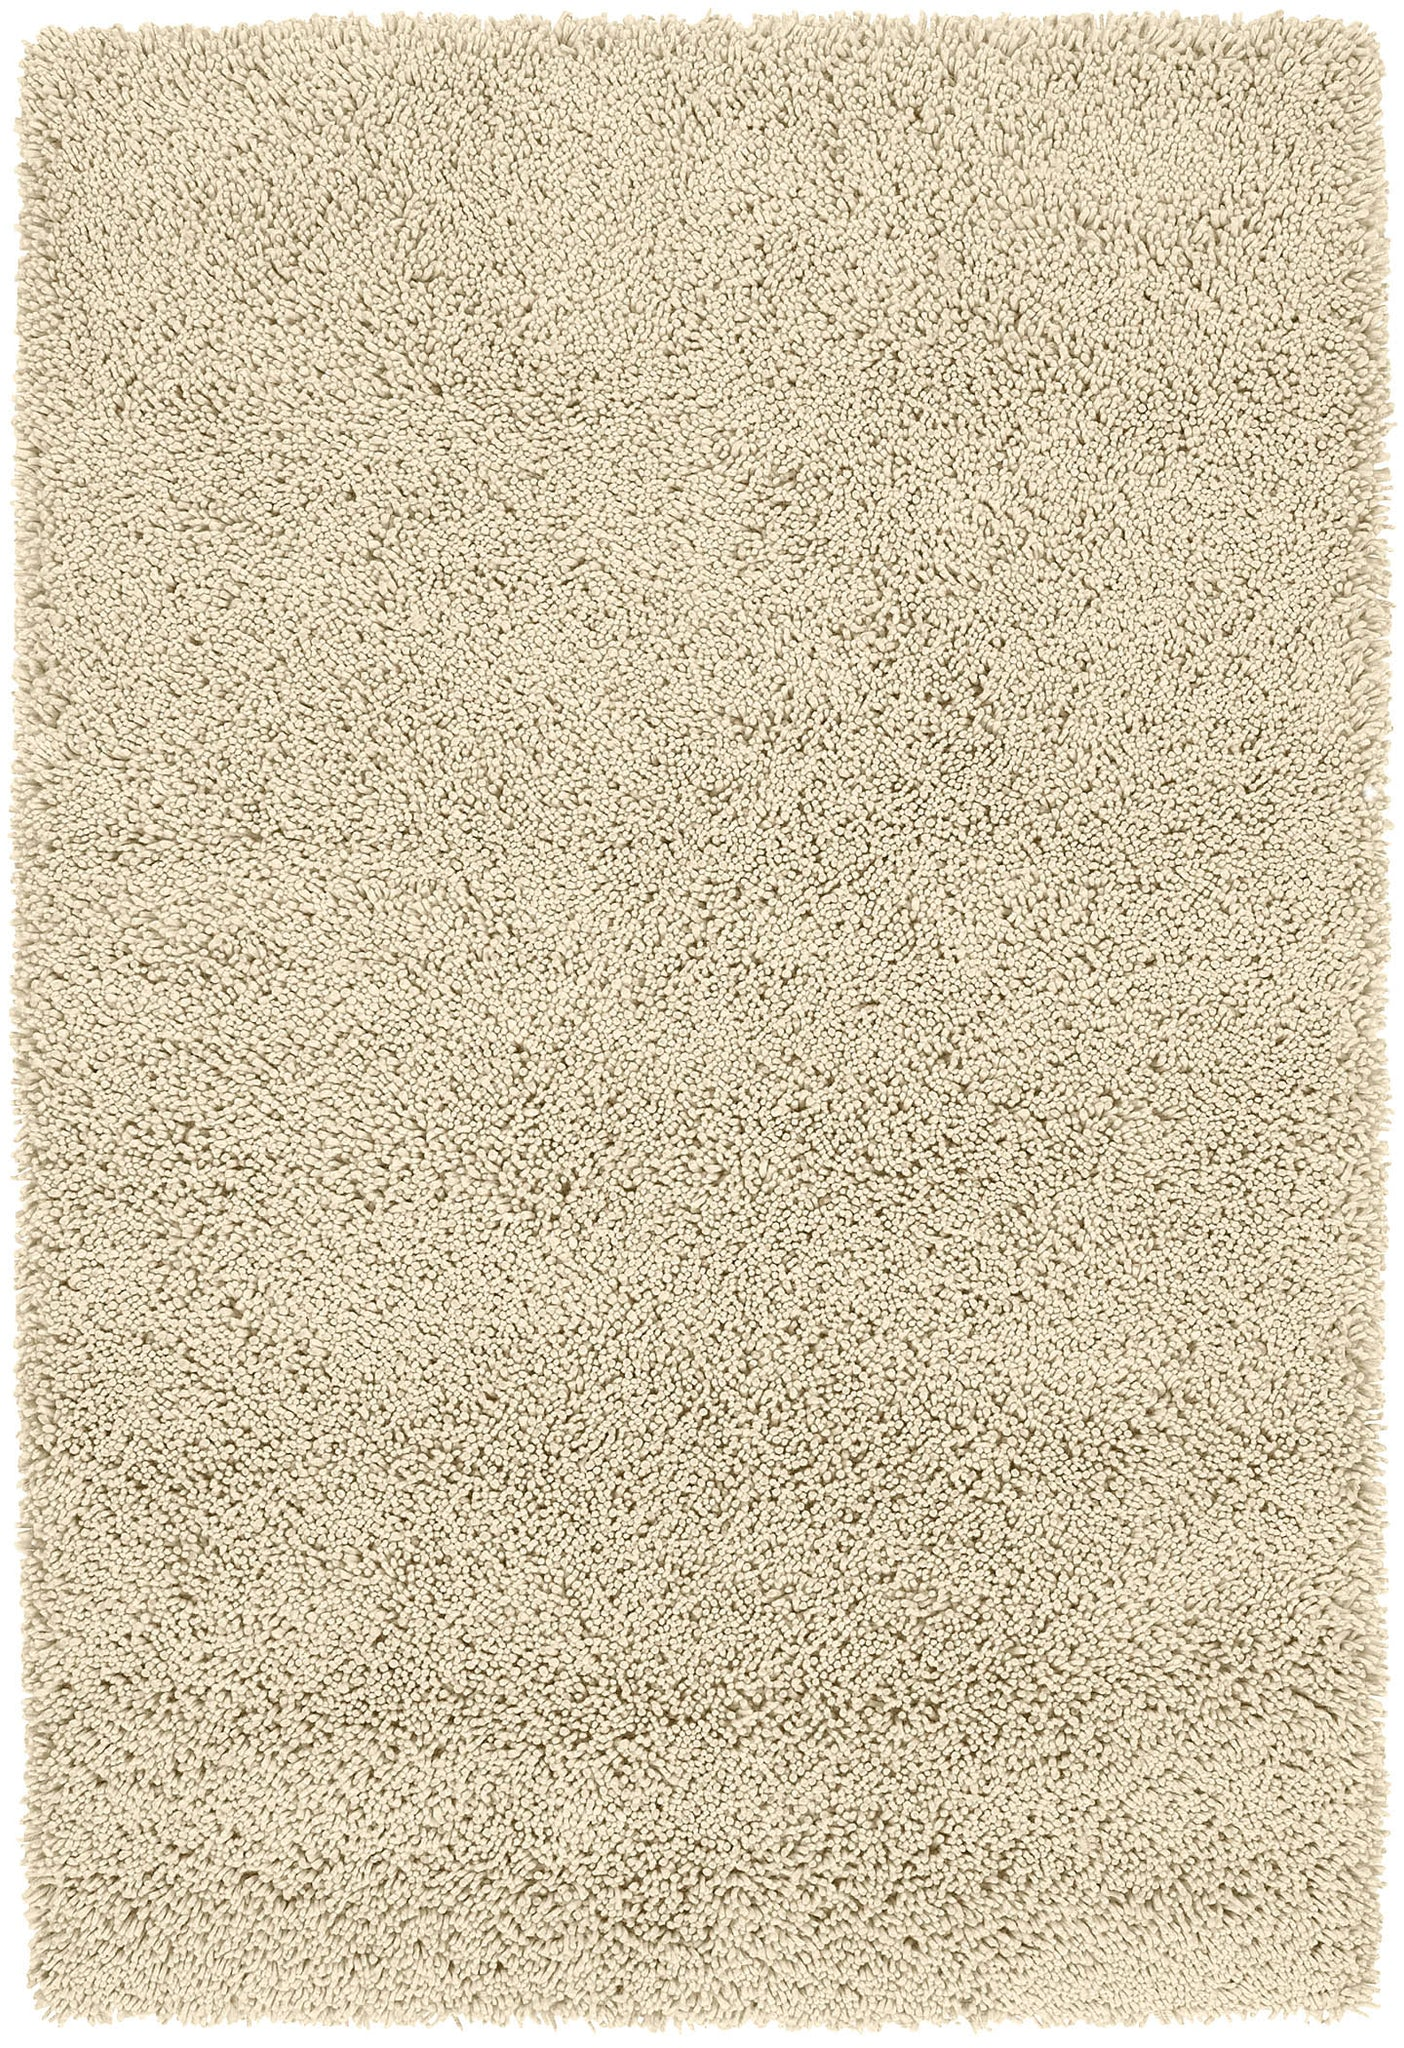 Kaleen Desert Song 9016-16 Flex Area Rug main image